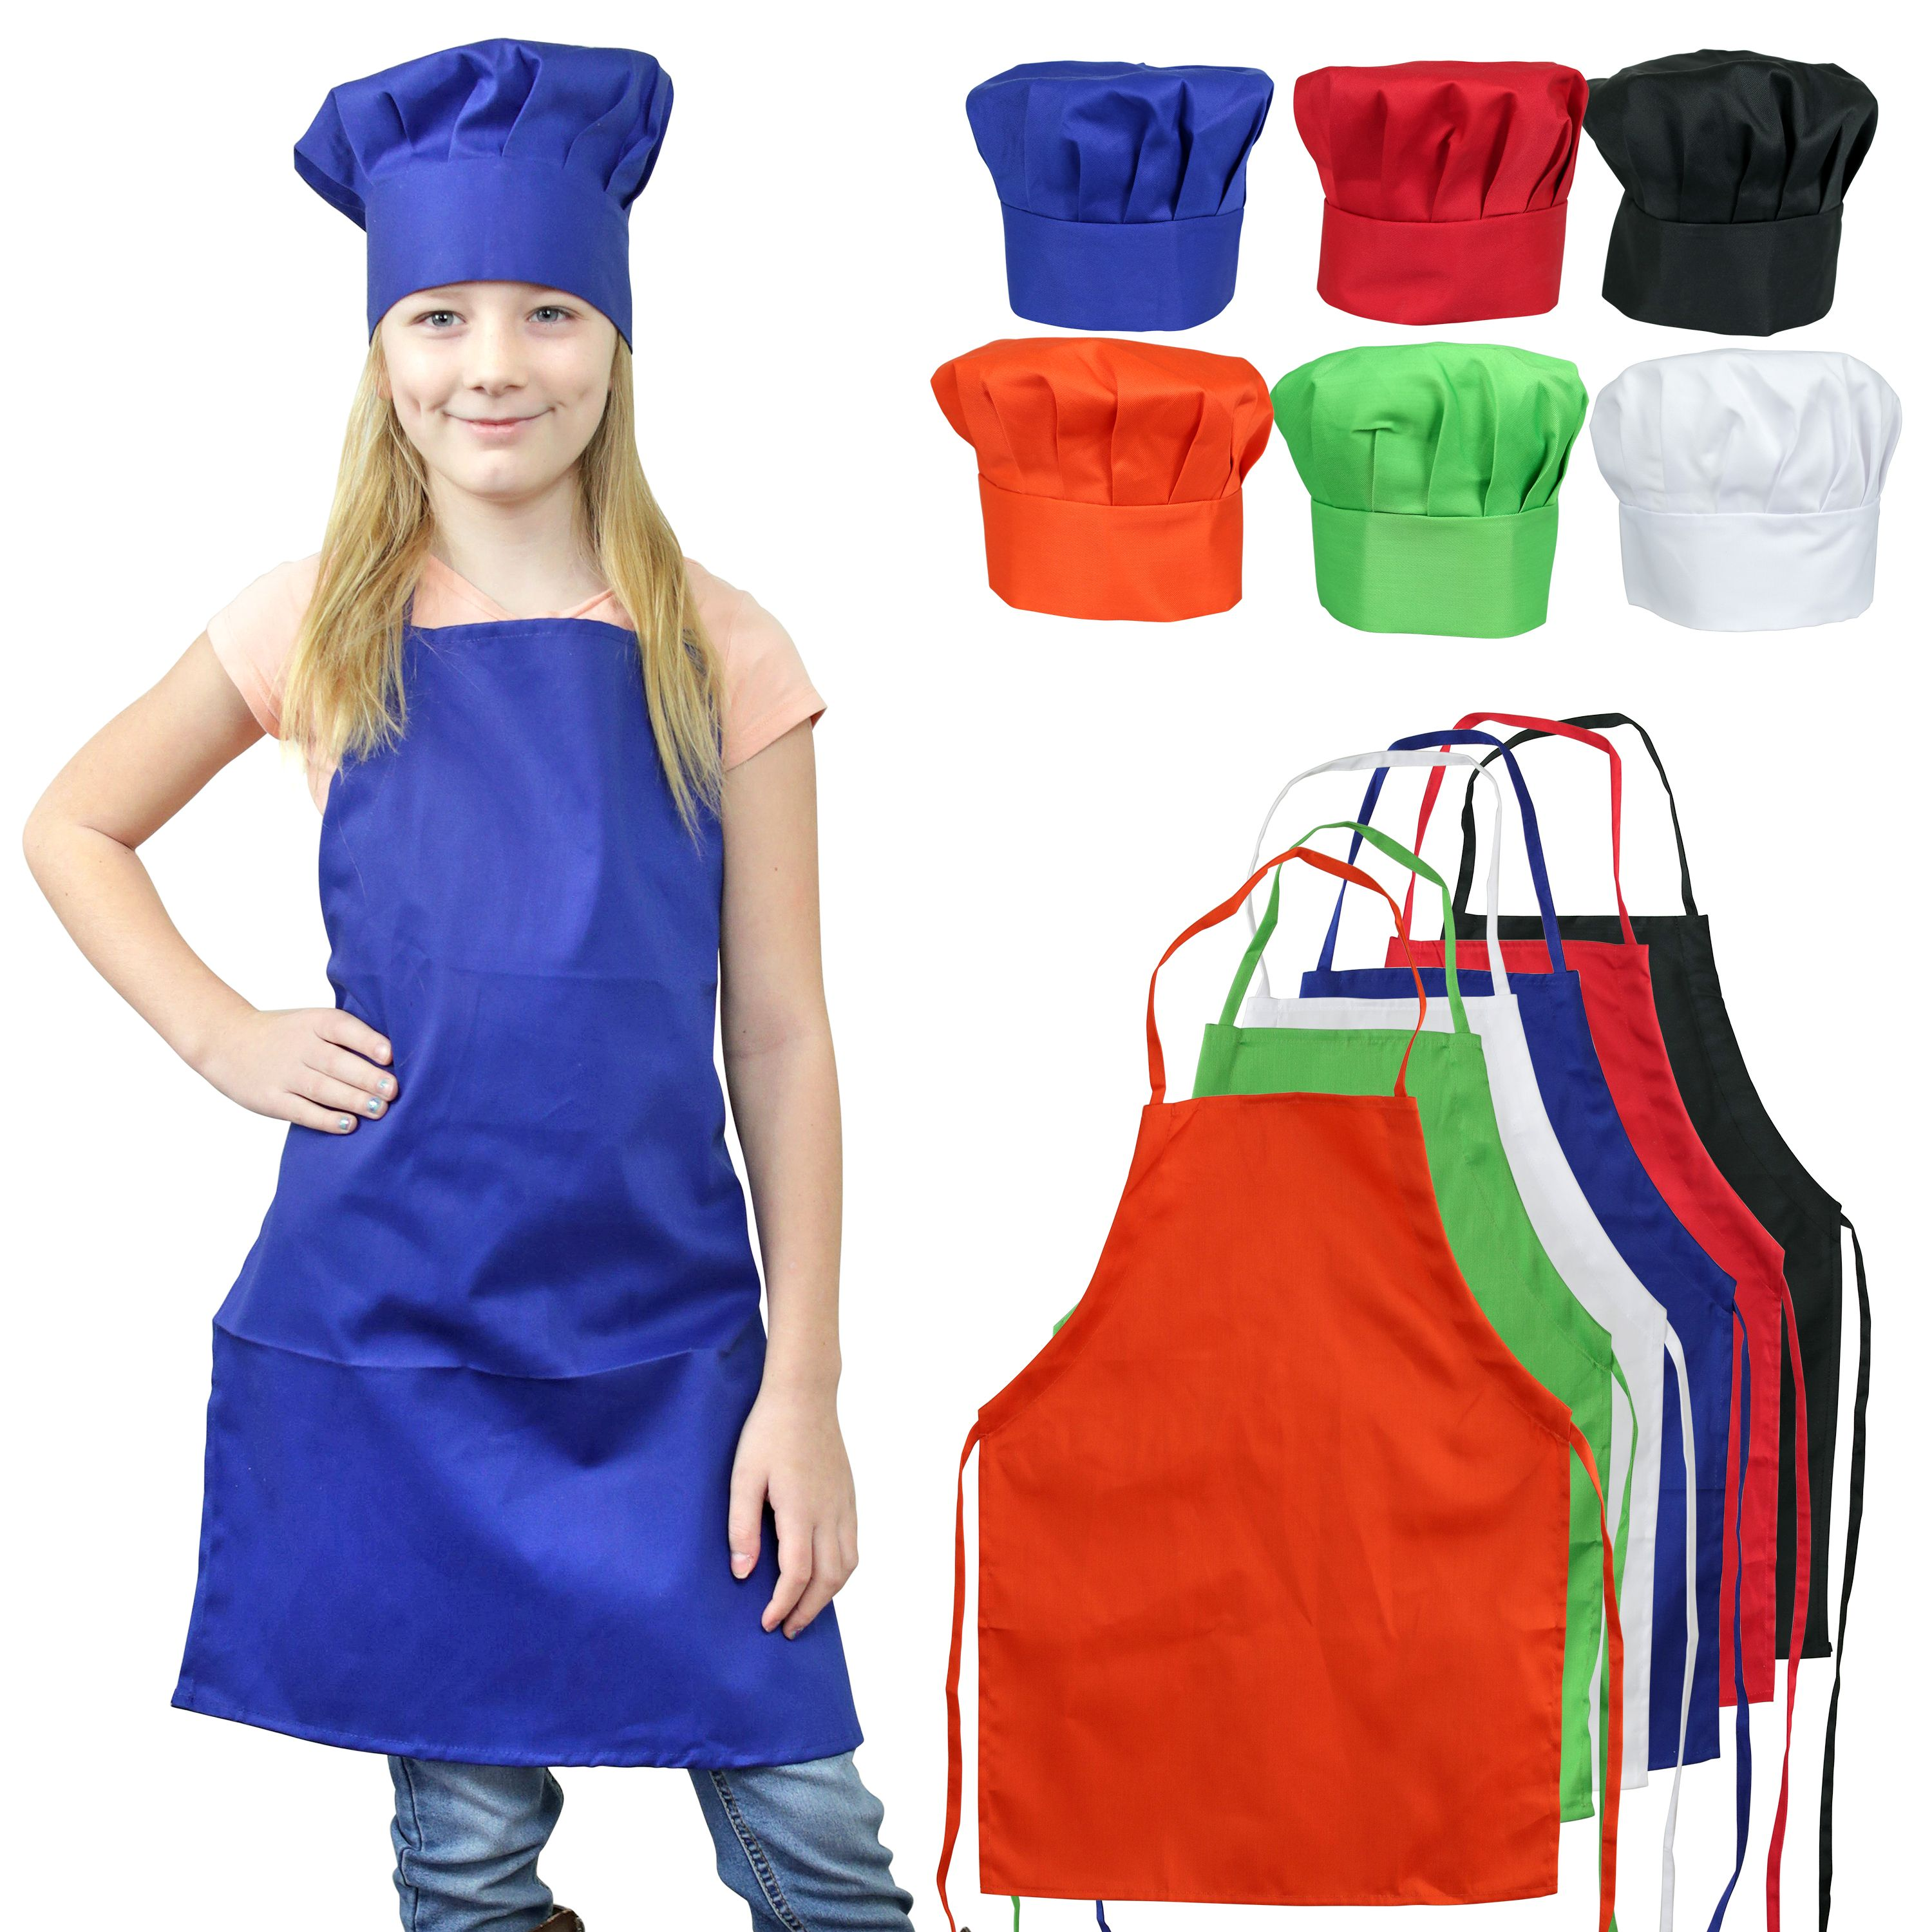 2 Pack Kids Chefs Apron Set White Hat Sleeves Aprons Adjustable Kids Kitchen Cooking /& Baking Painting Wear 4-10 Years Old